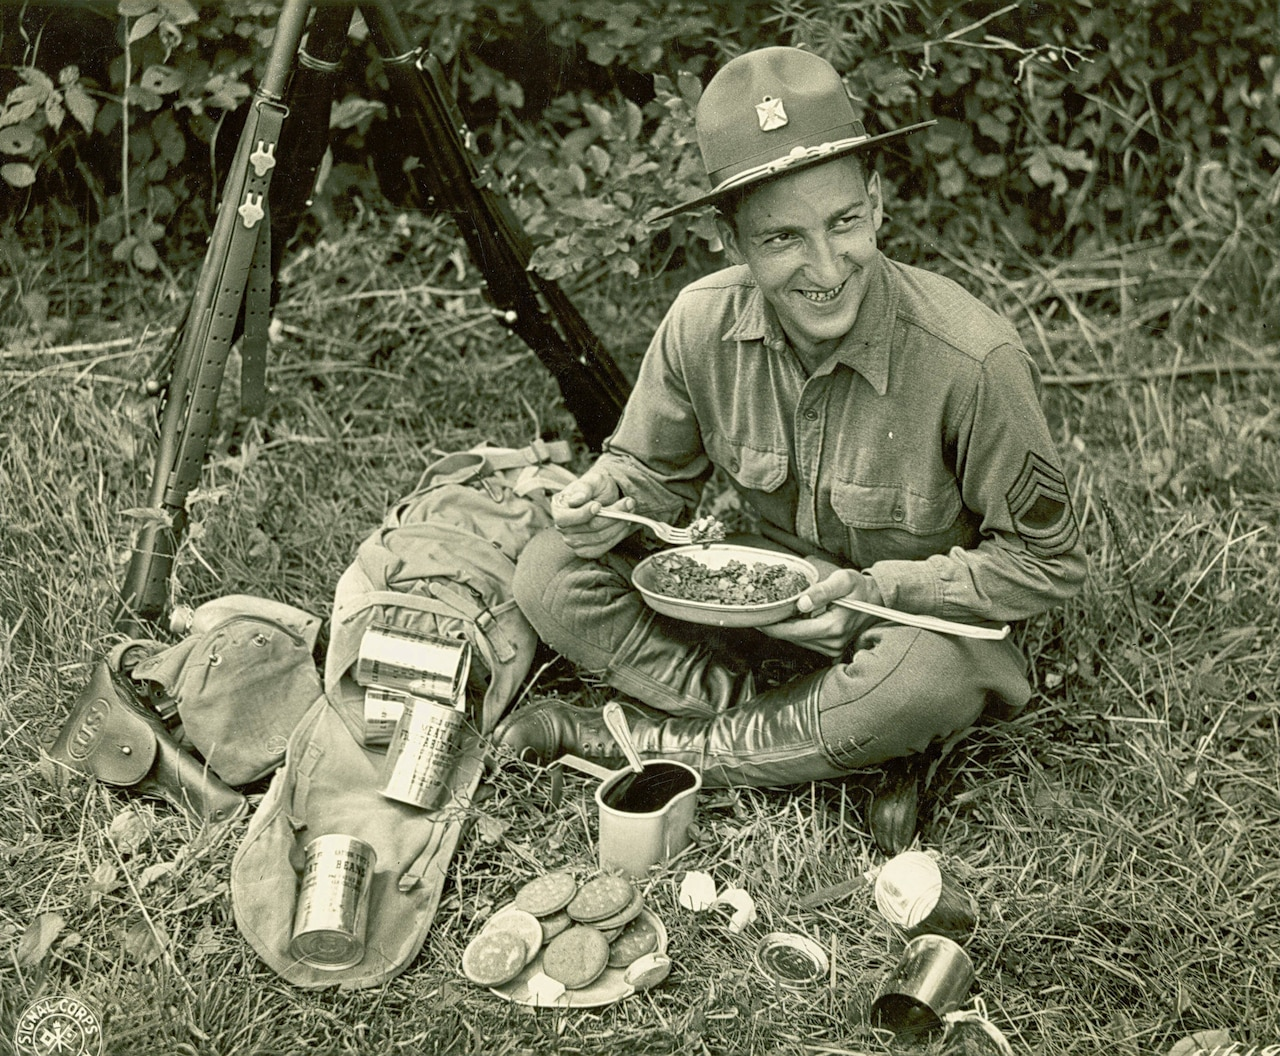 A soldier sits on the ground eating C-rations.